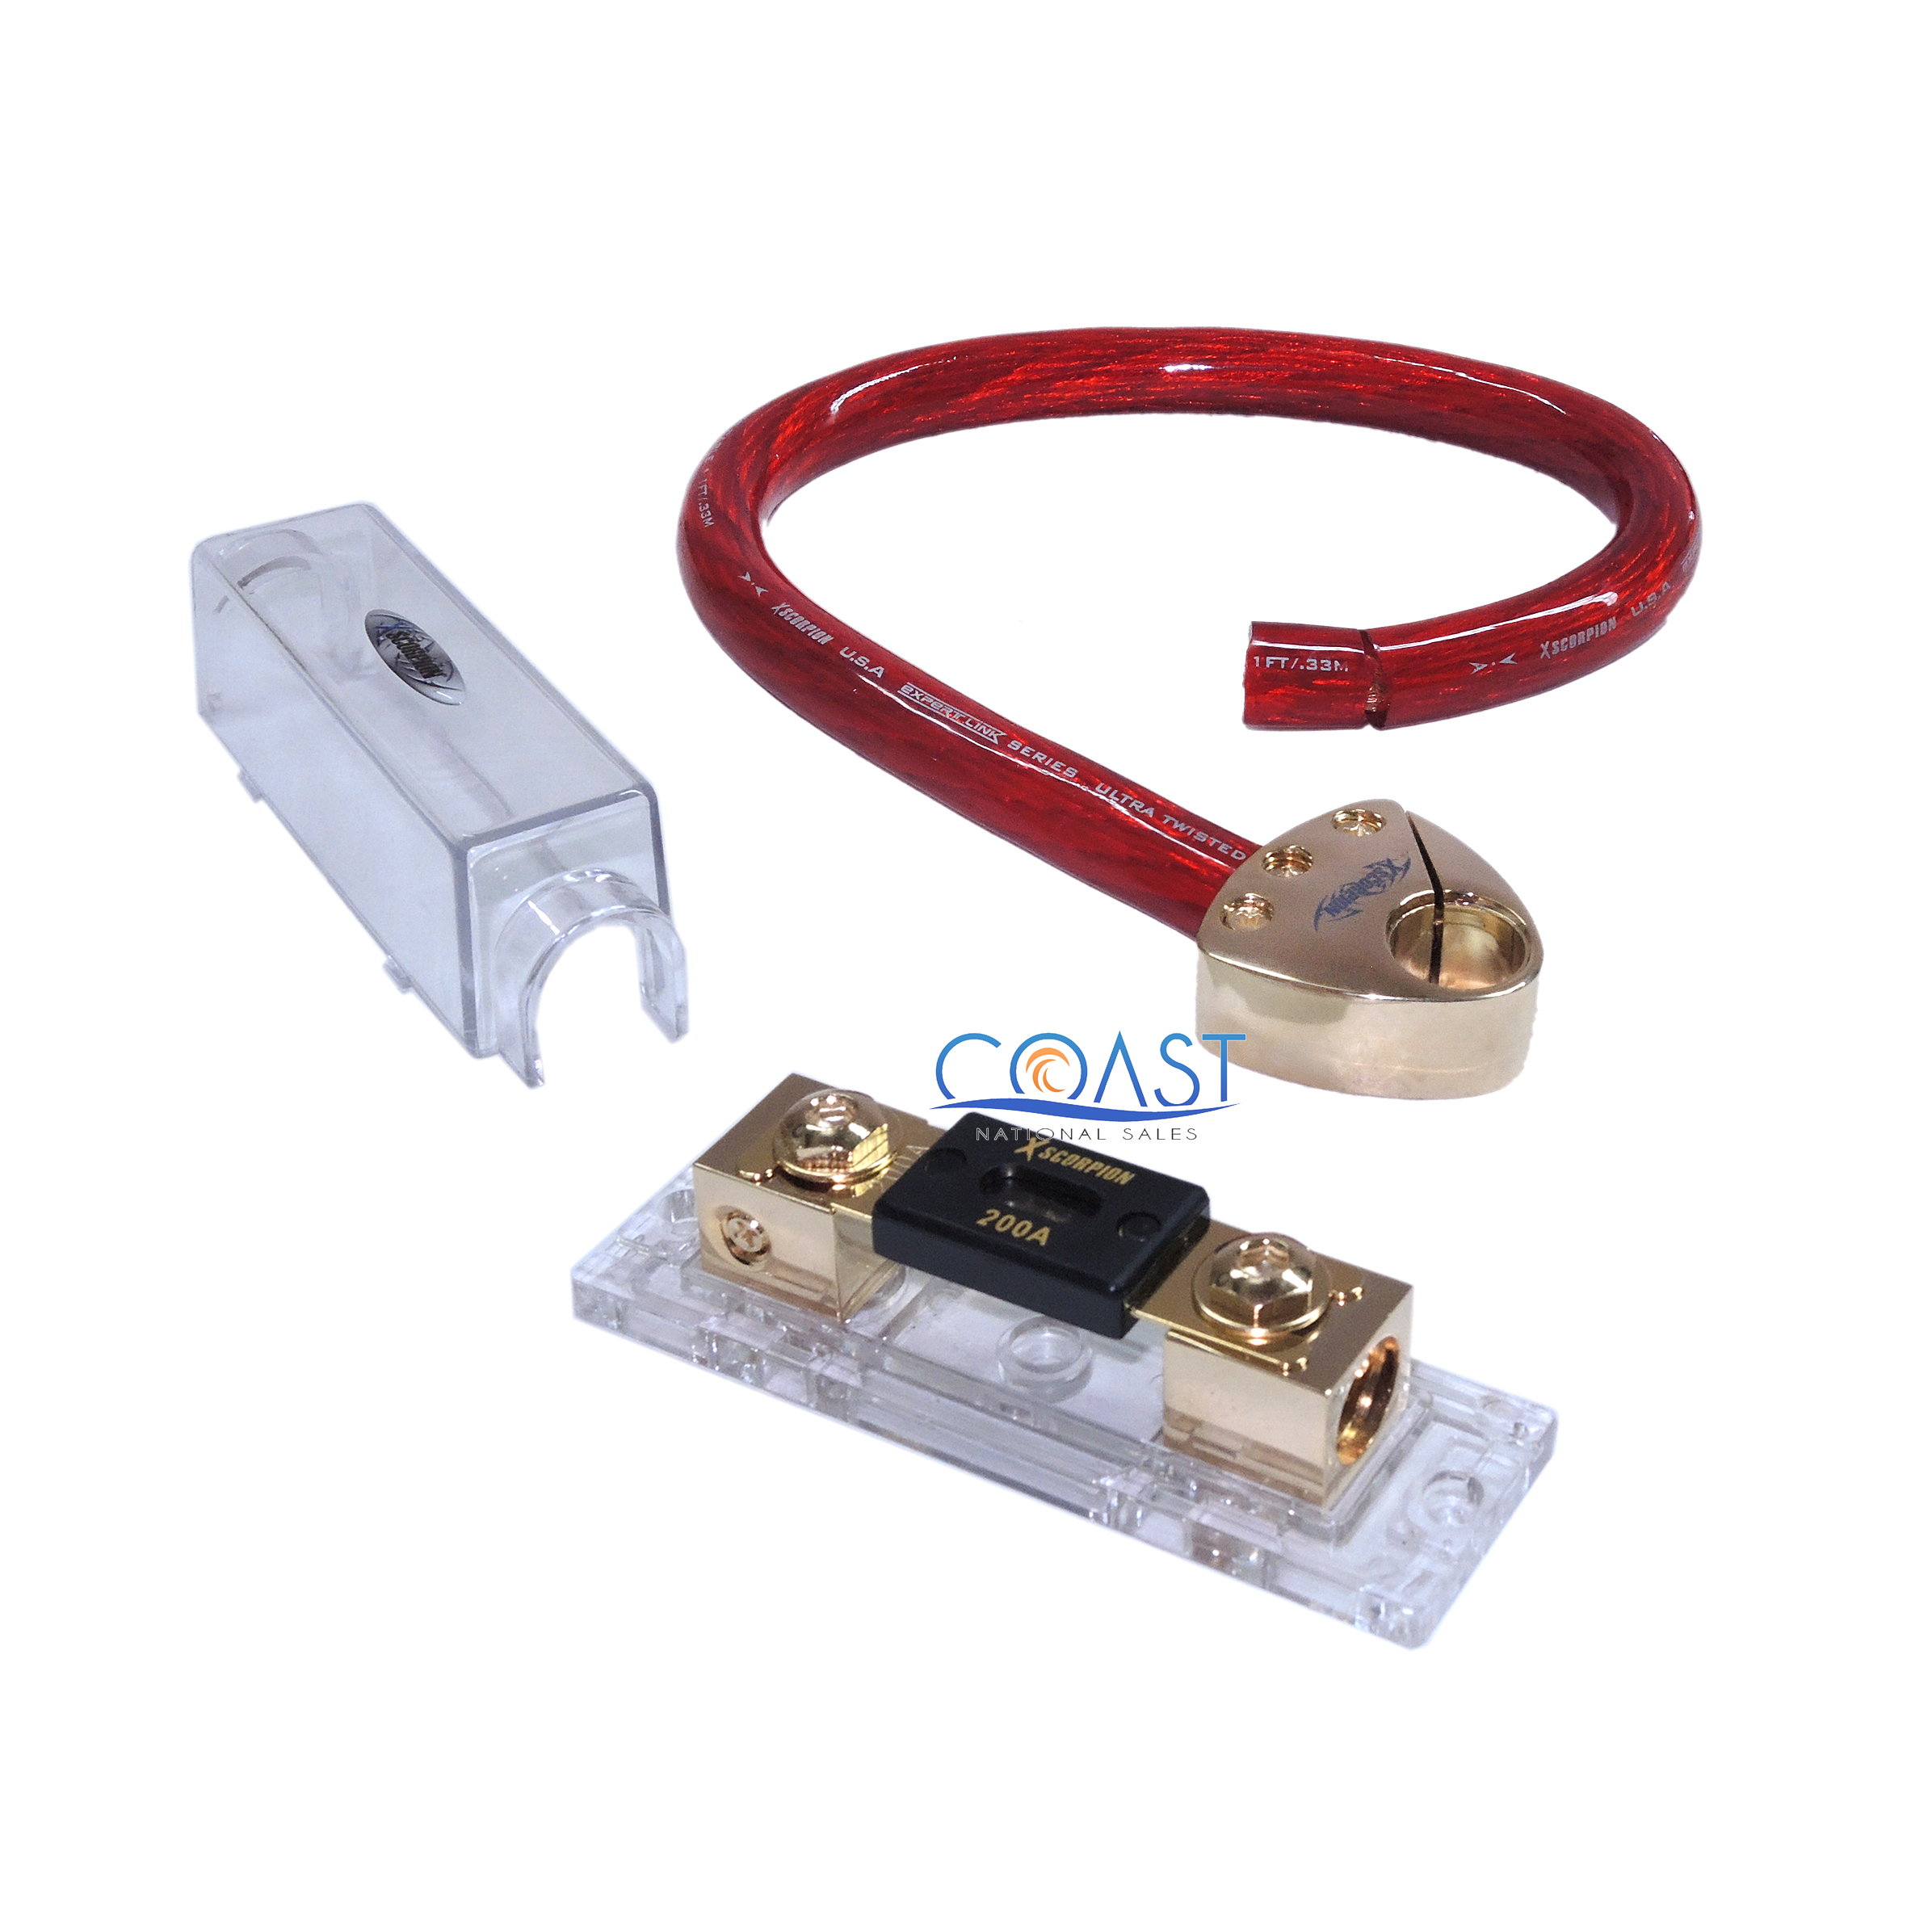 Car Anl In Line Fuse Holder 1 0 Awg 15 Ft Ofc Red Cable Box Cables Battery Post Kit